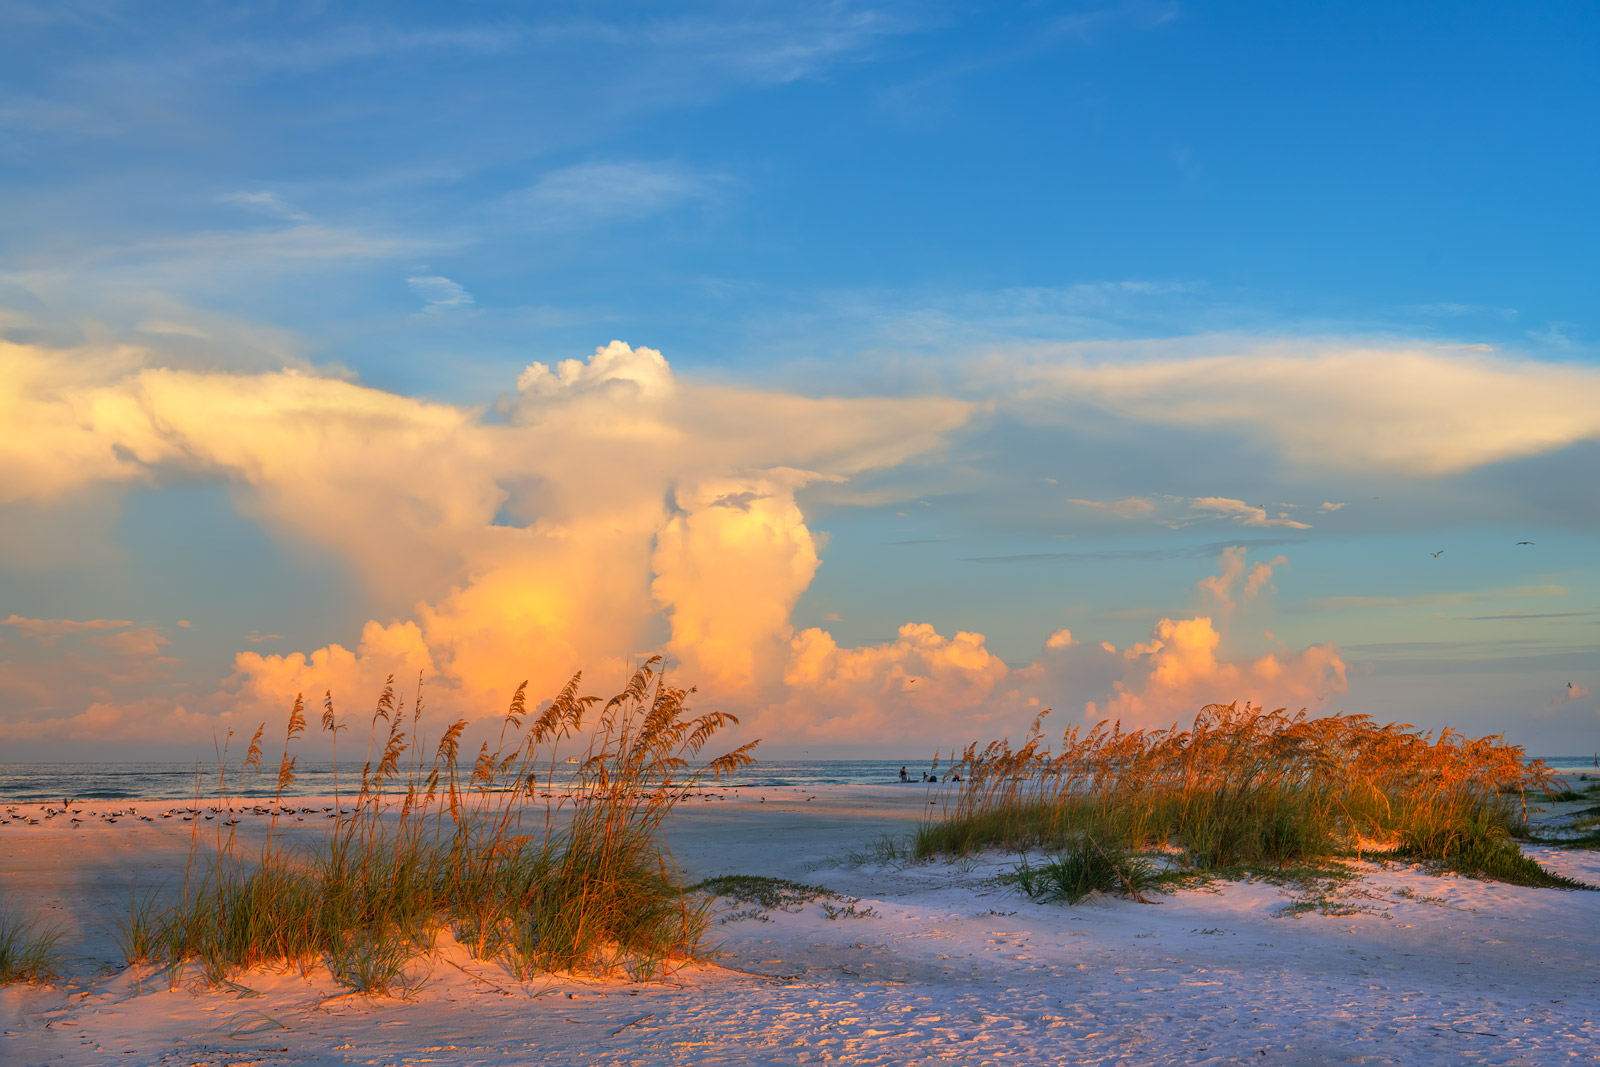 A Limited Edition, Fine Art photograph of small sand dunes with sea oats on the Gulf Coast at Lido Key, Florida. Available as...